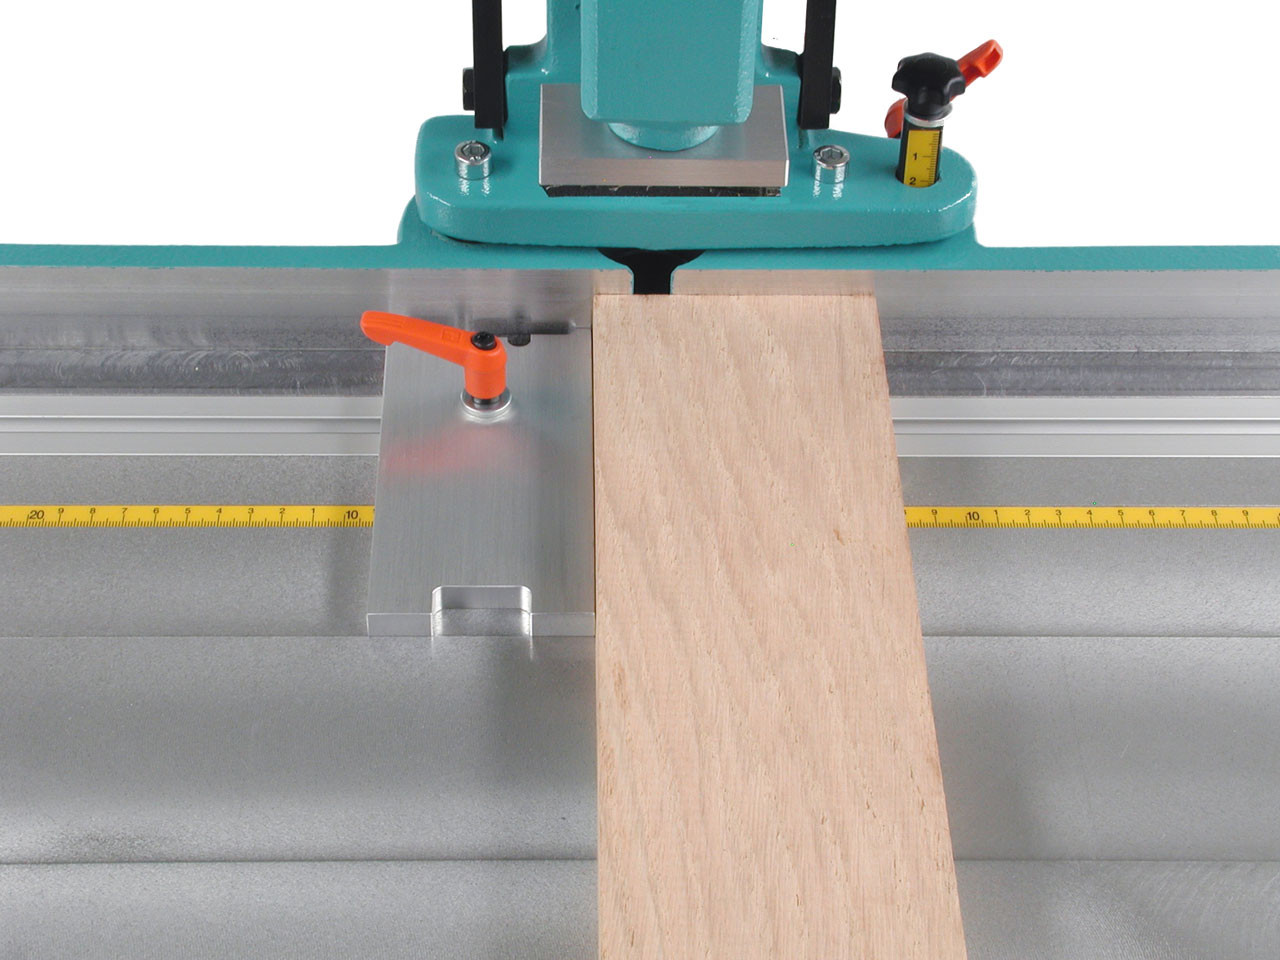 Hoffmann X20 - routing parts for a square joint